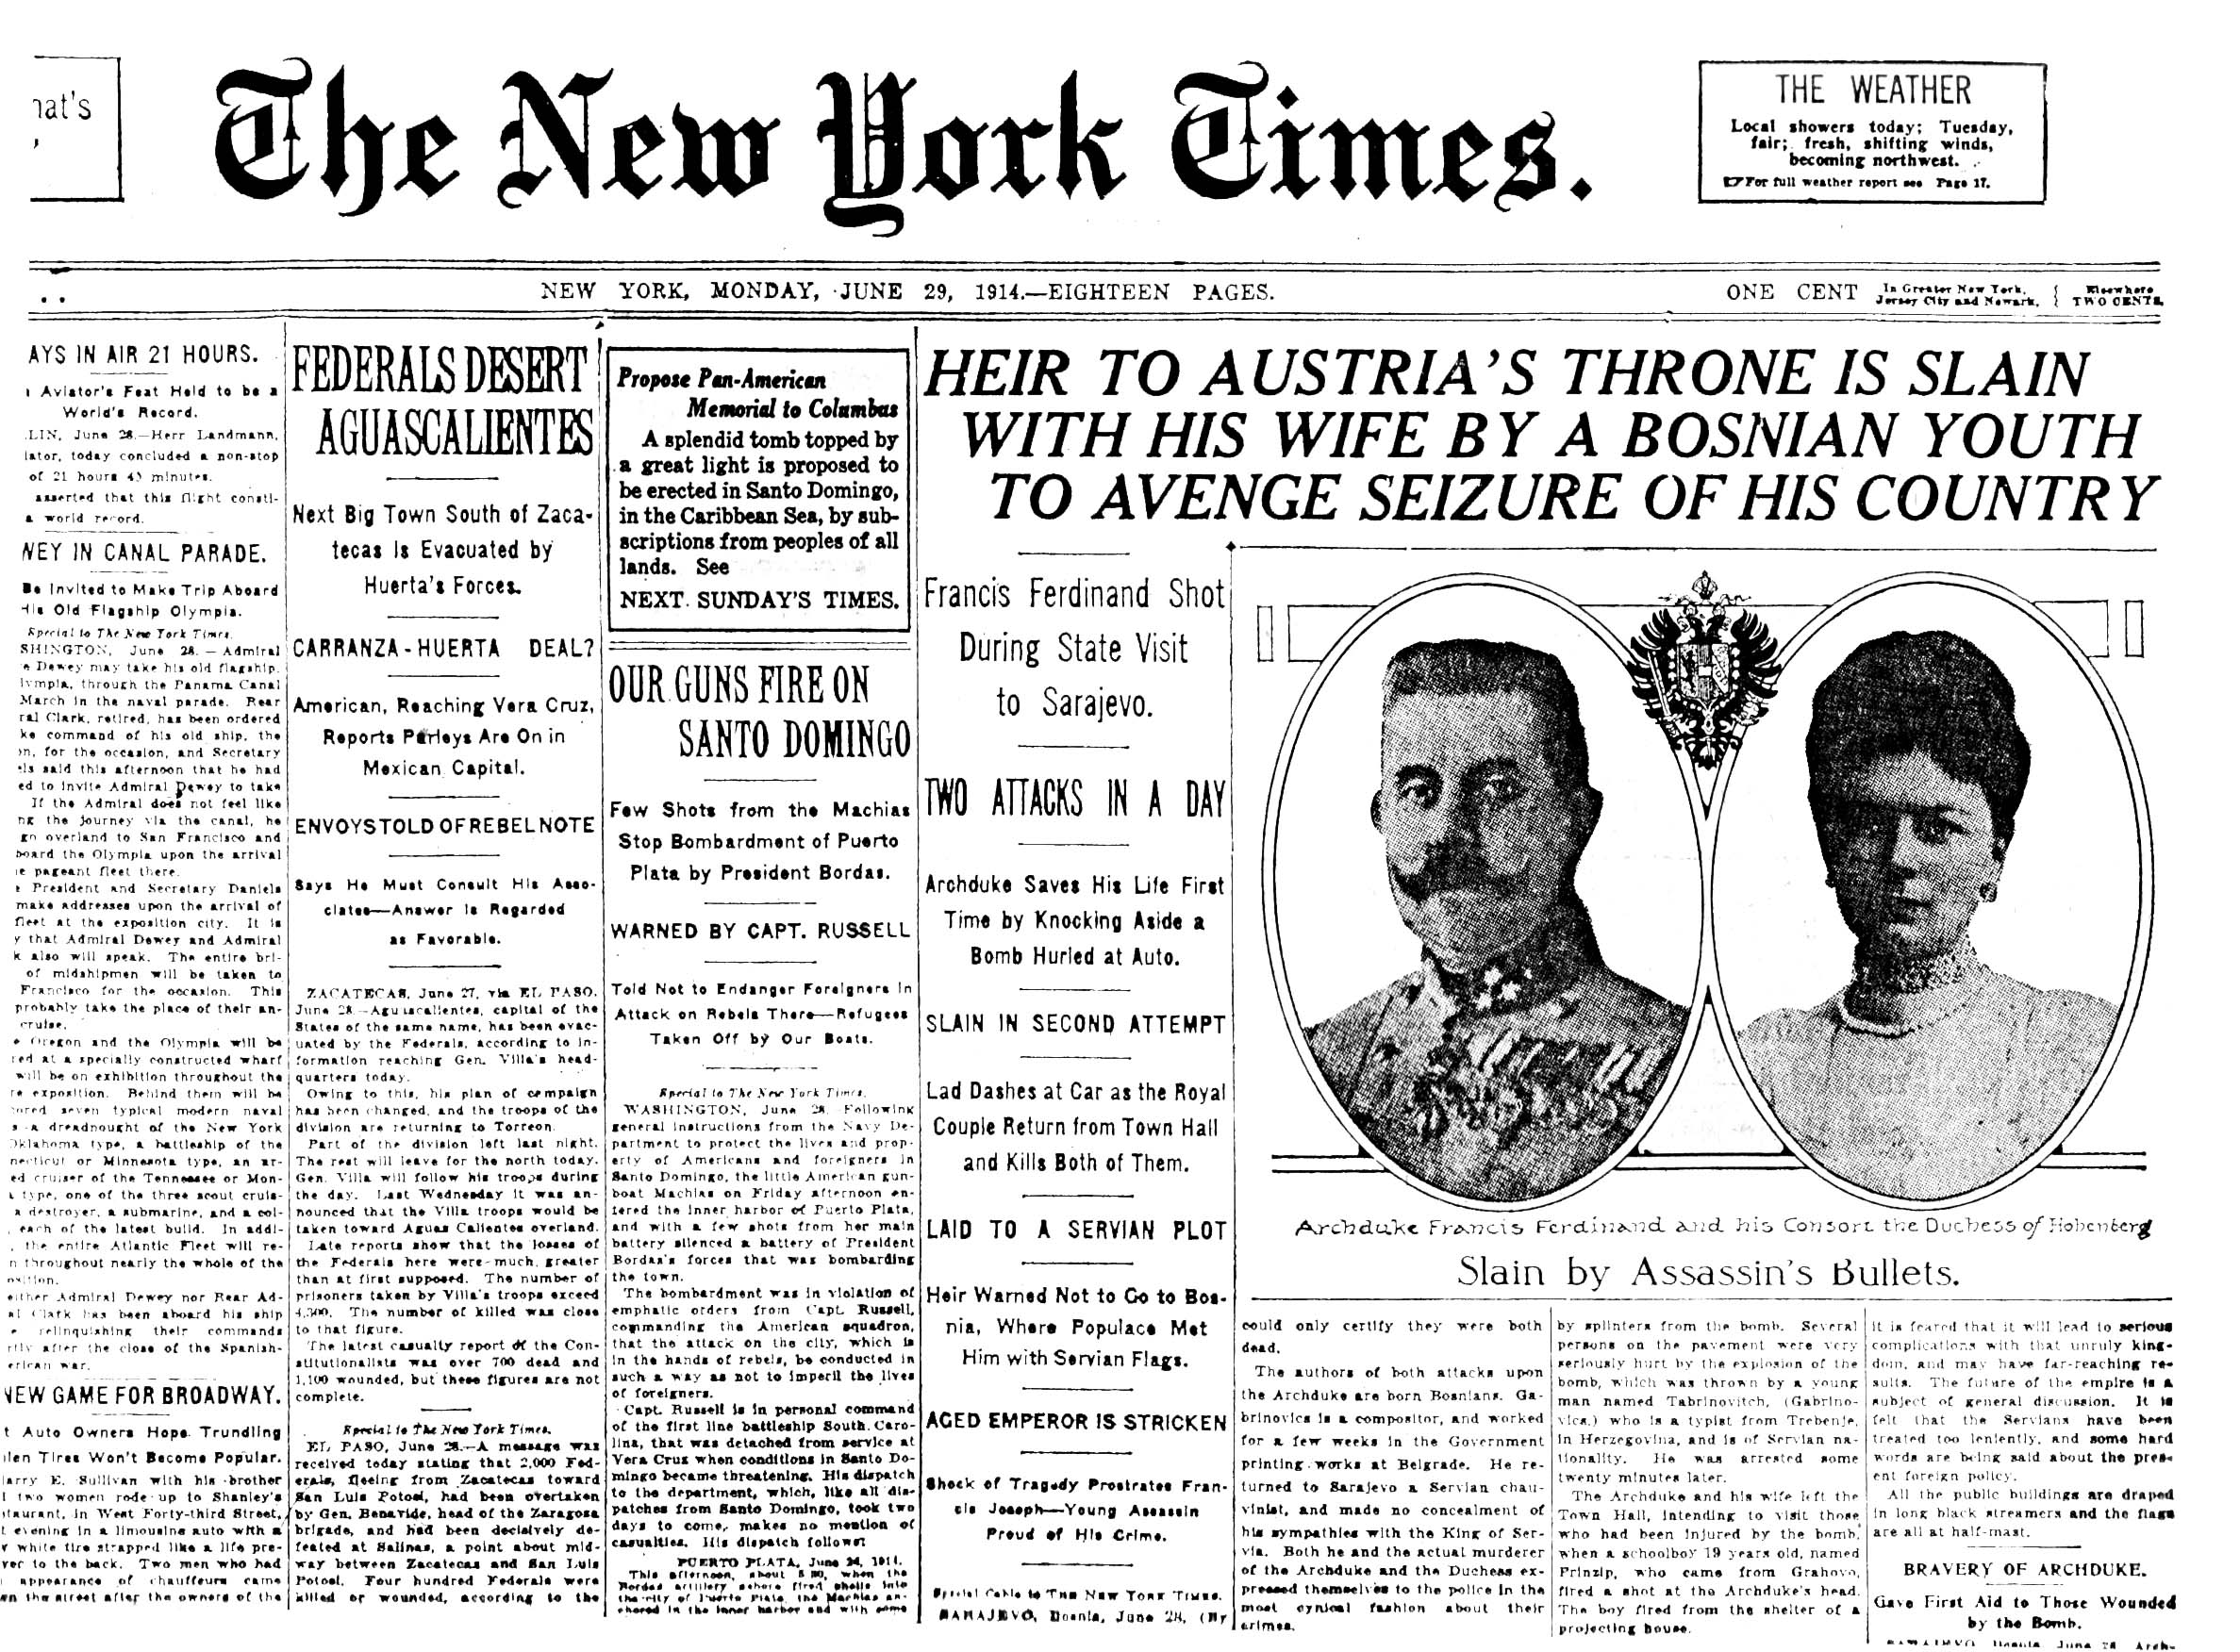 An issue of The New York Times dated June 29